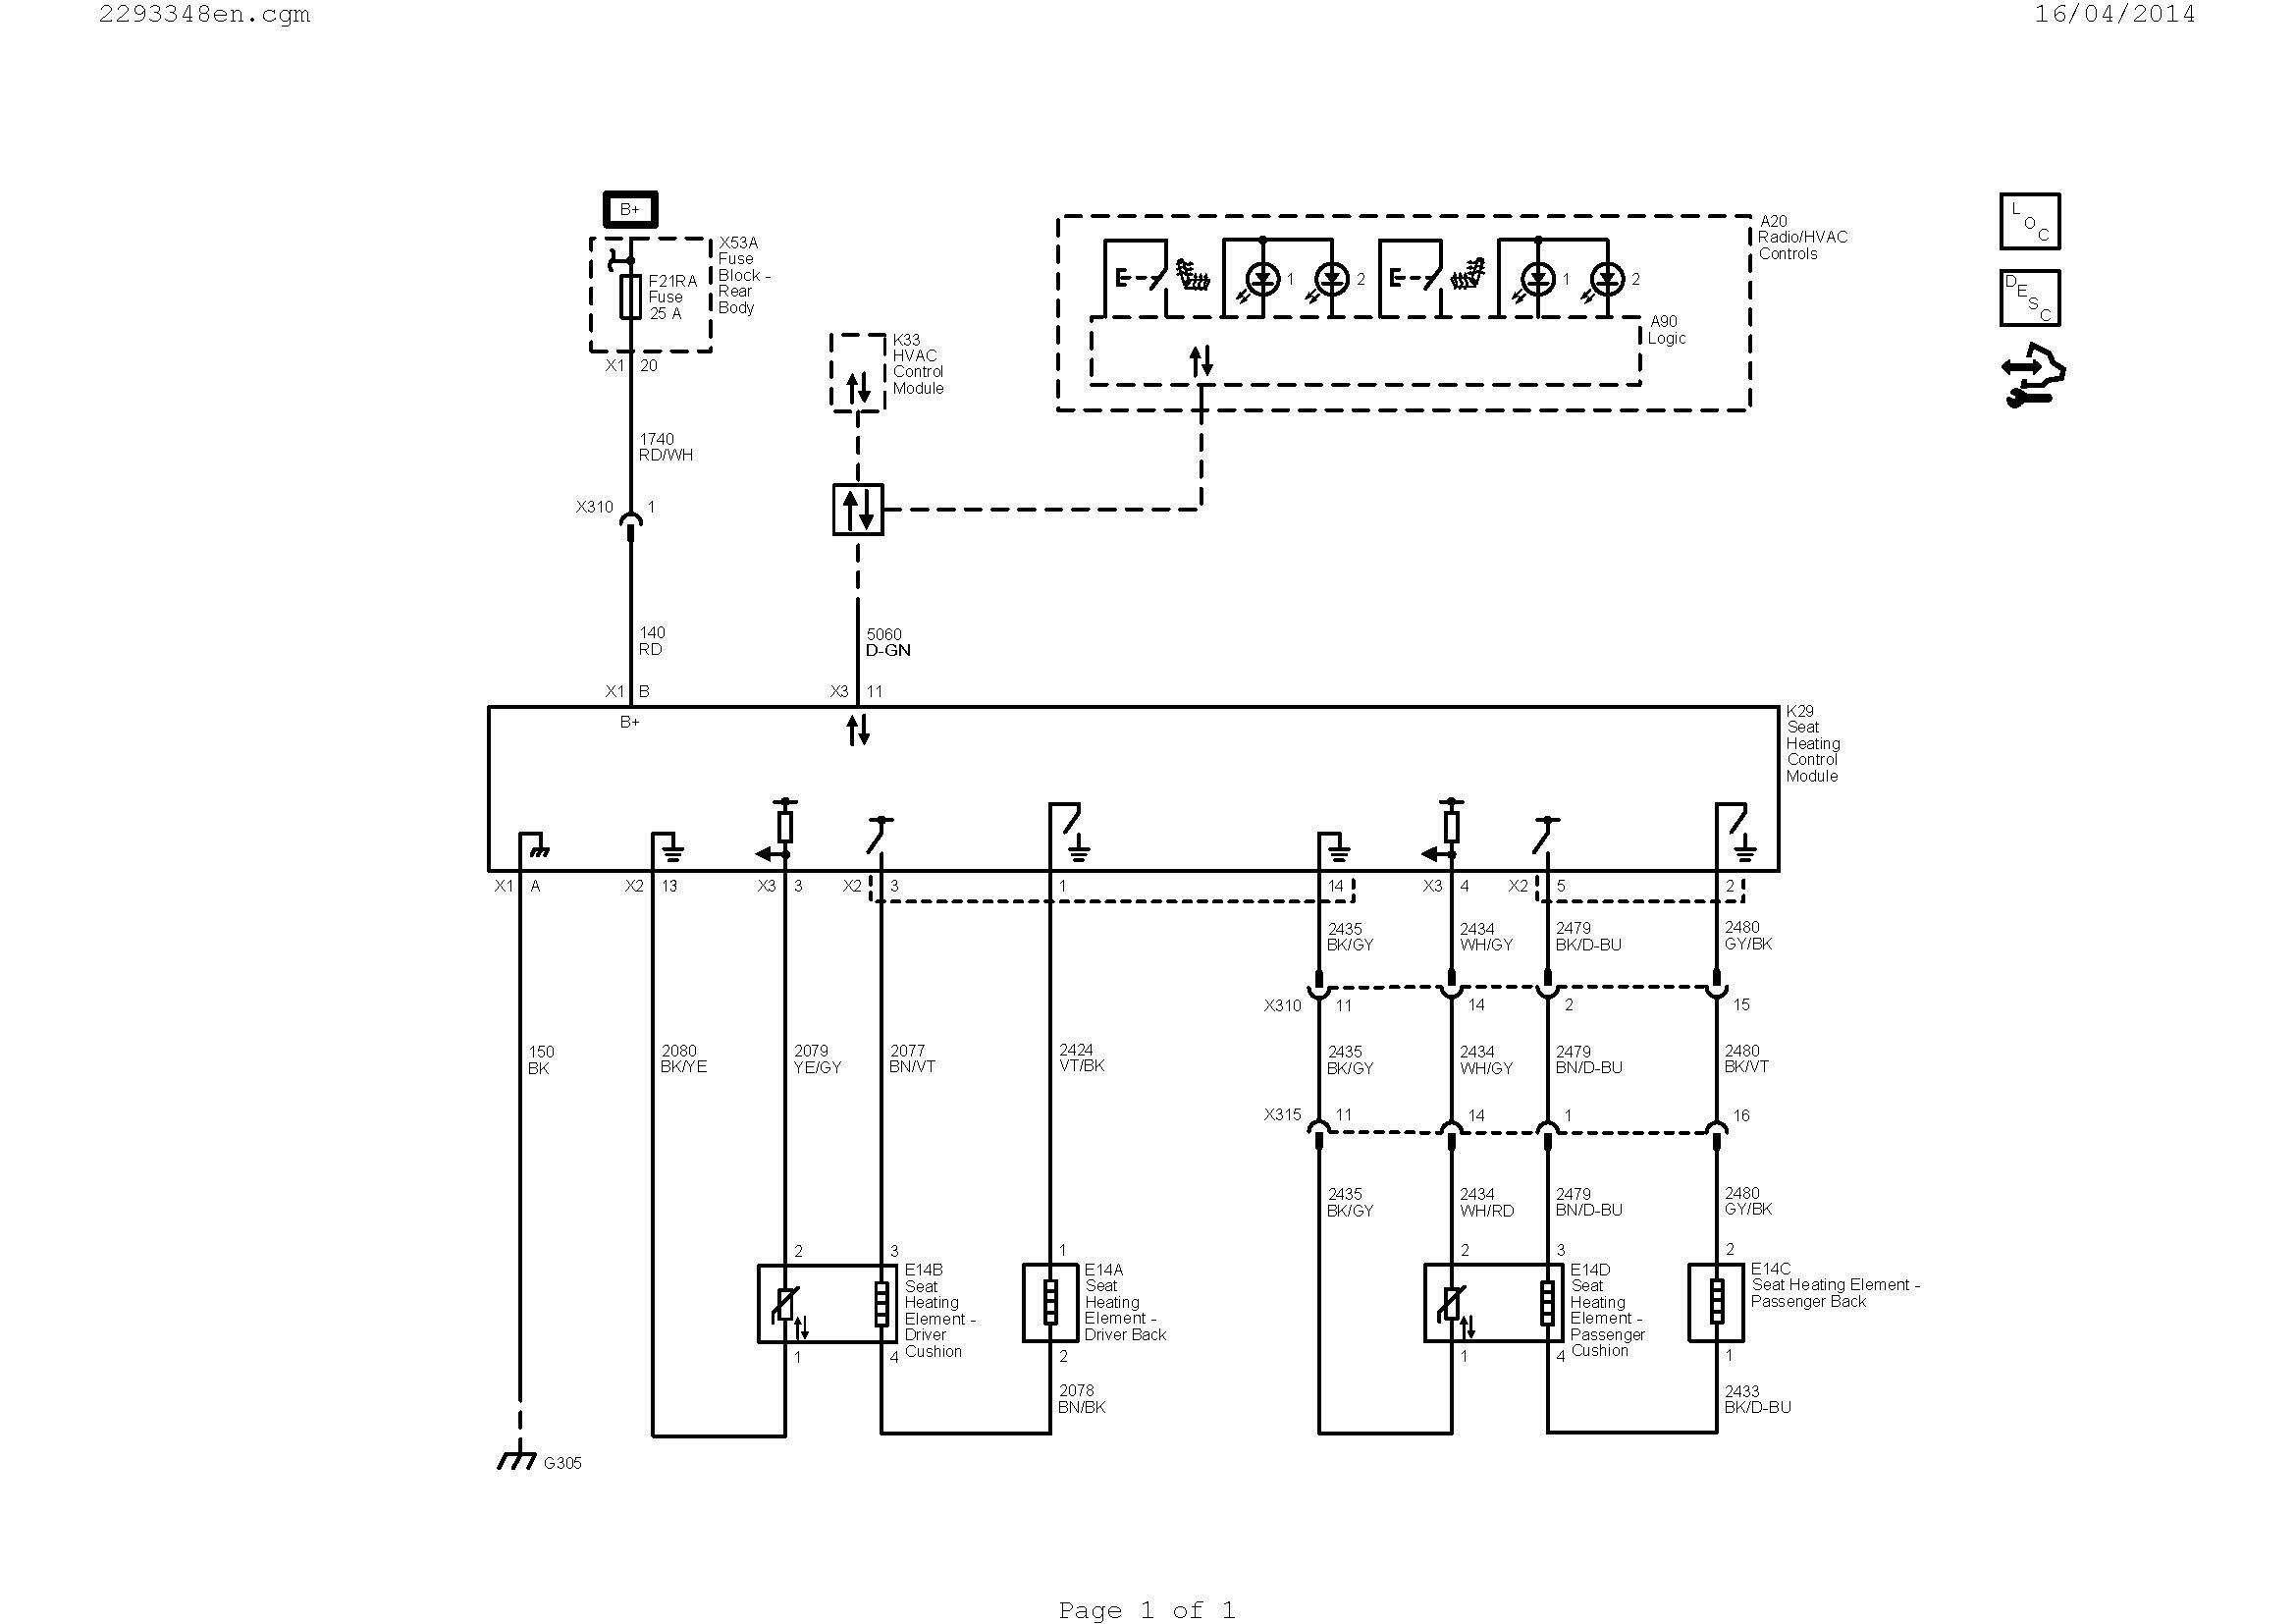 dometic digital thermostat wiring diagram Collection-Wiring Diagram Pics Detail Name rv thermostat wiring 19-n